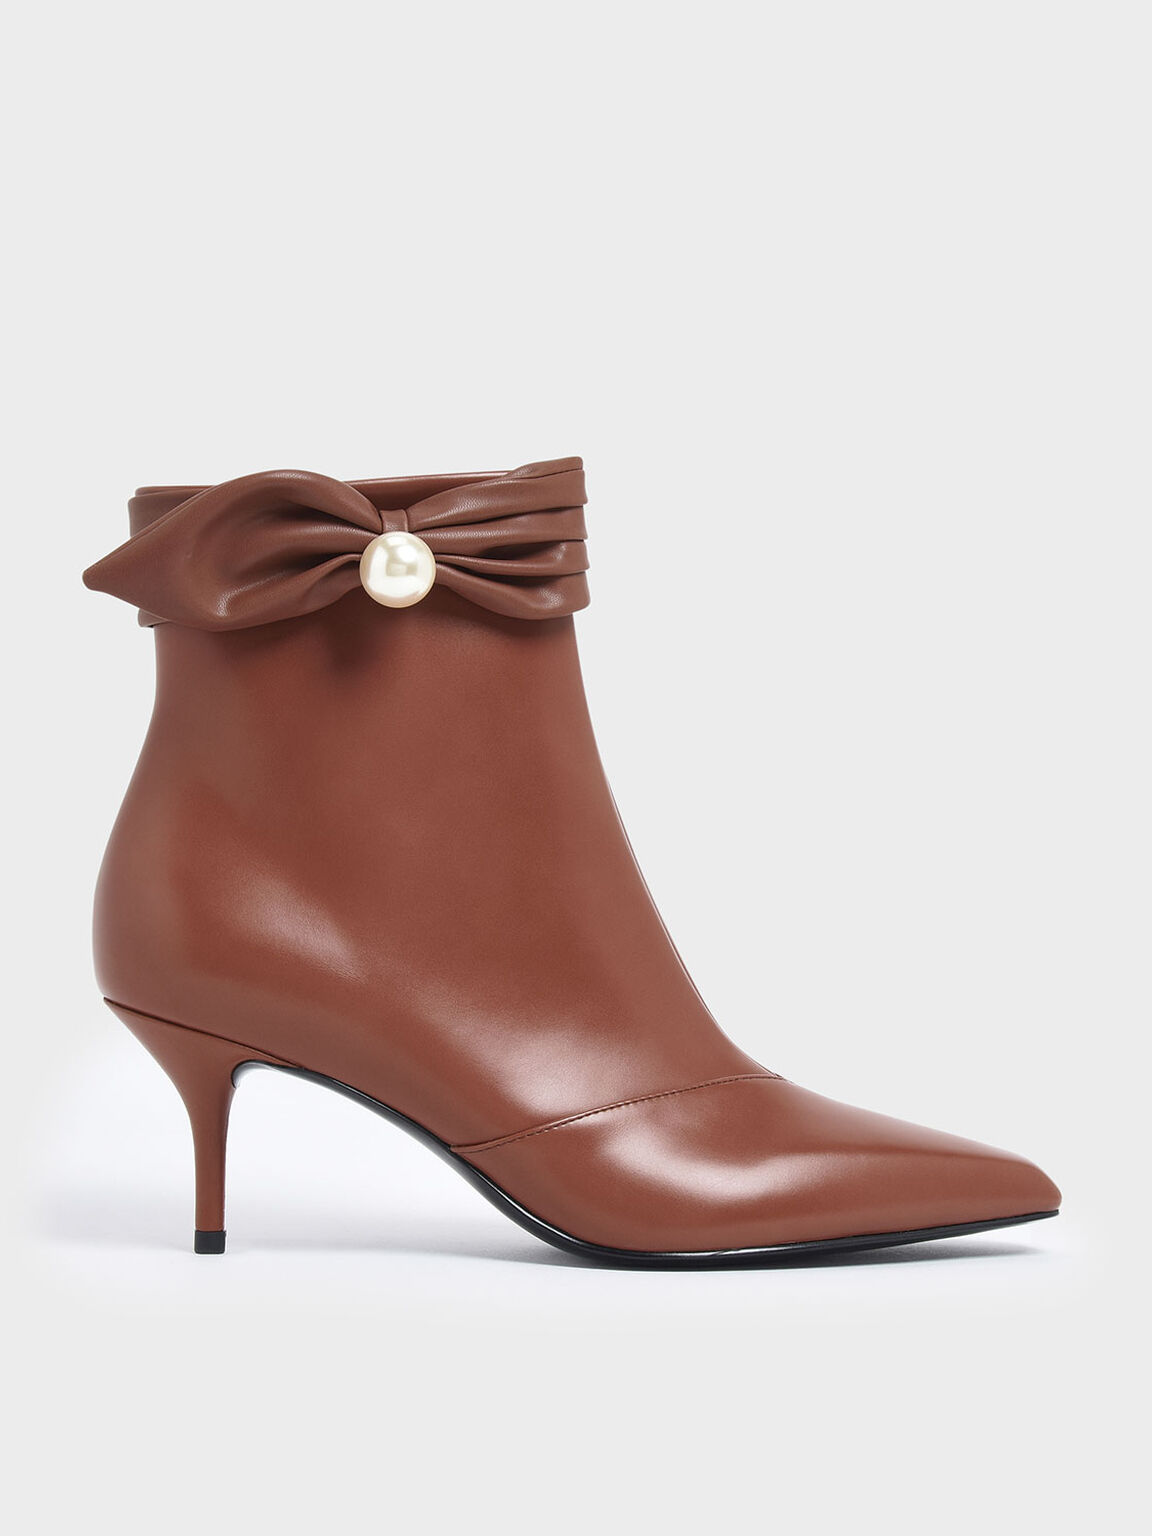 Ruched Embellished Ankle Boots, Brick, hi-res